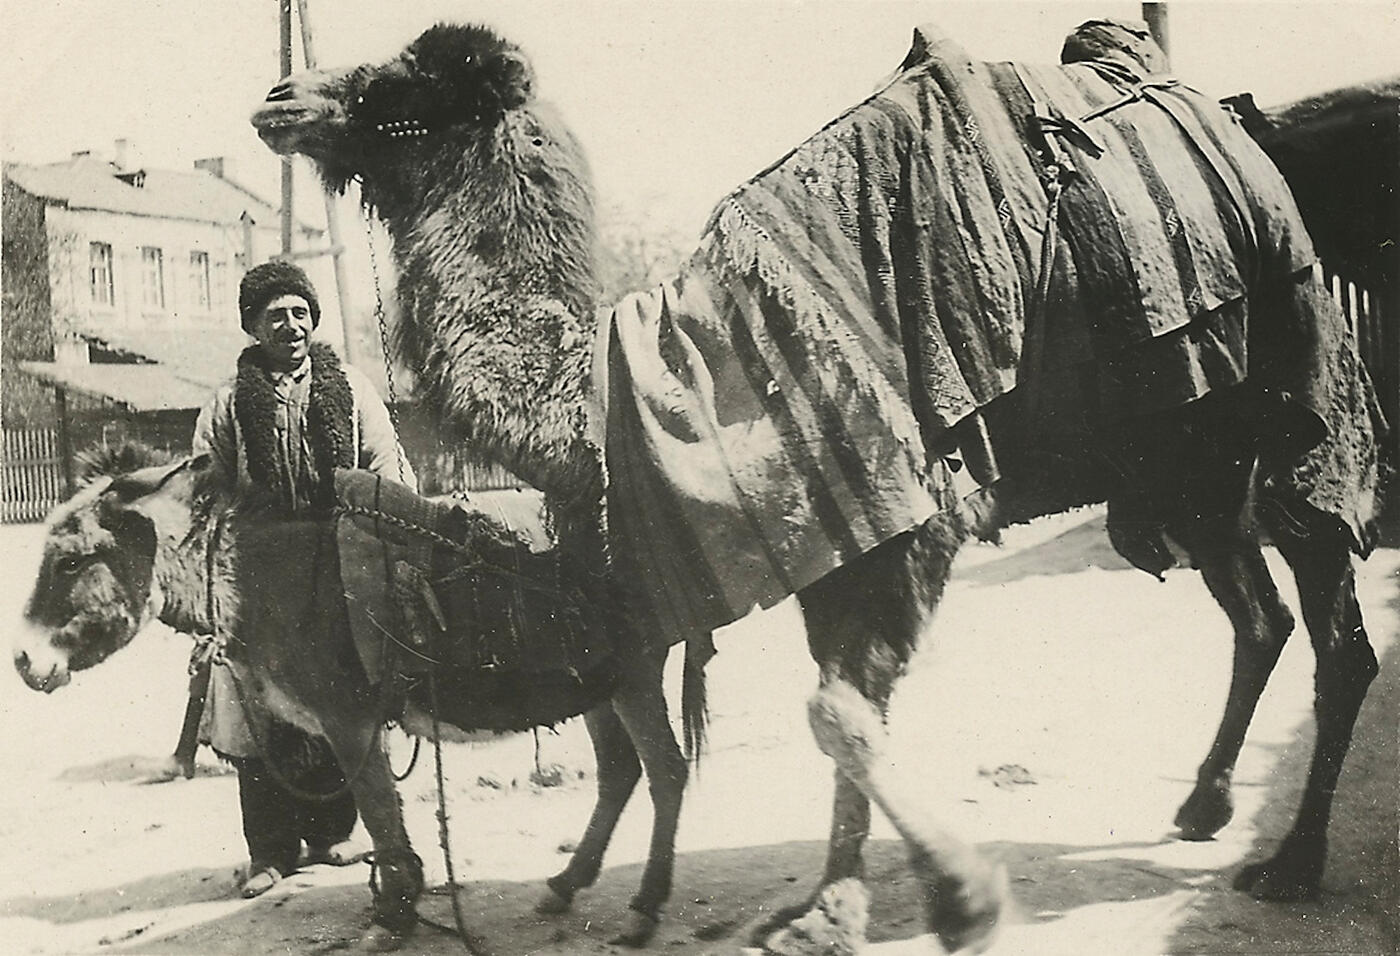 Woman in a Veil and Peasant from Quba Region Arriving to Baku